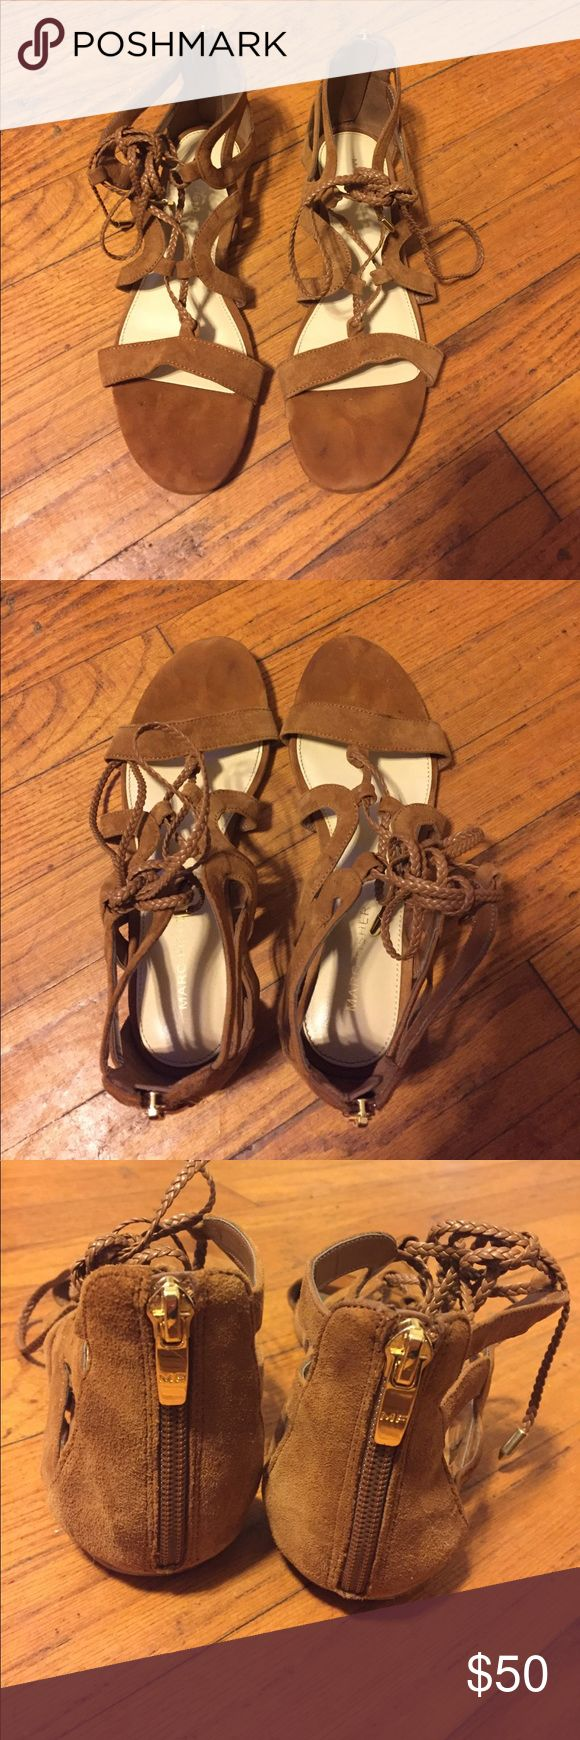 Marc Fisher Lace-Up Suede Sandals Excellent Condition Marc Fisher Braided Leather Lace-up Suede Sandals. Only signs of wear on soles per pictures. Size 7. Zip up back for ease. Marc Fisher Shoes Sandals